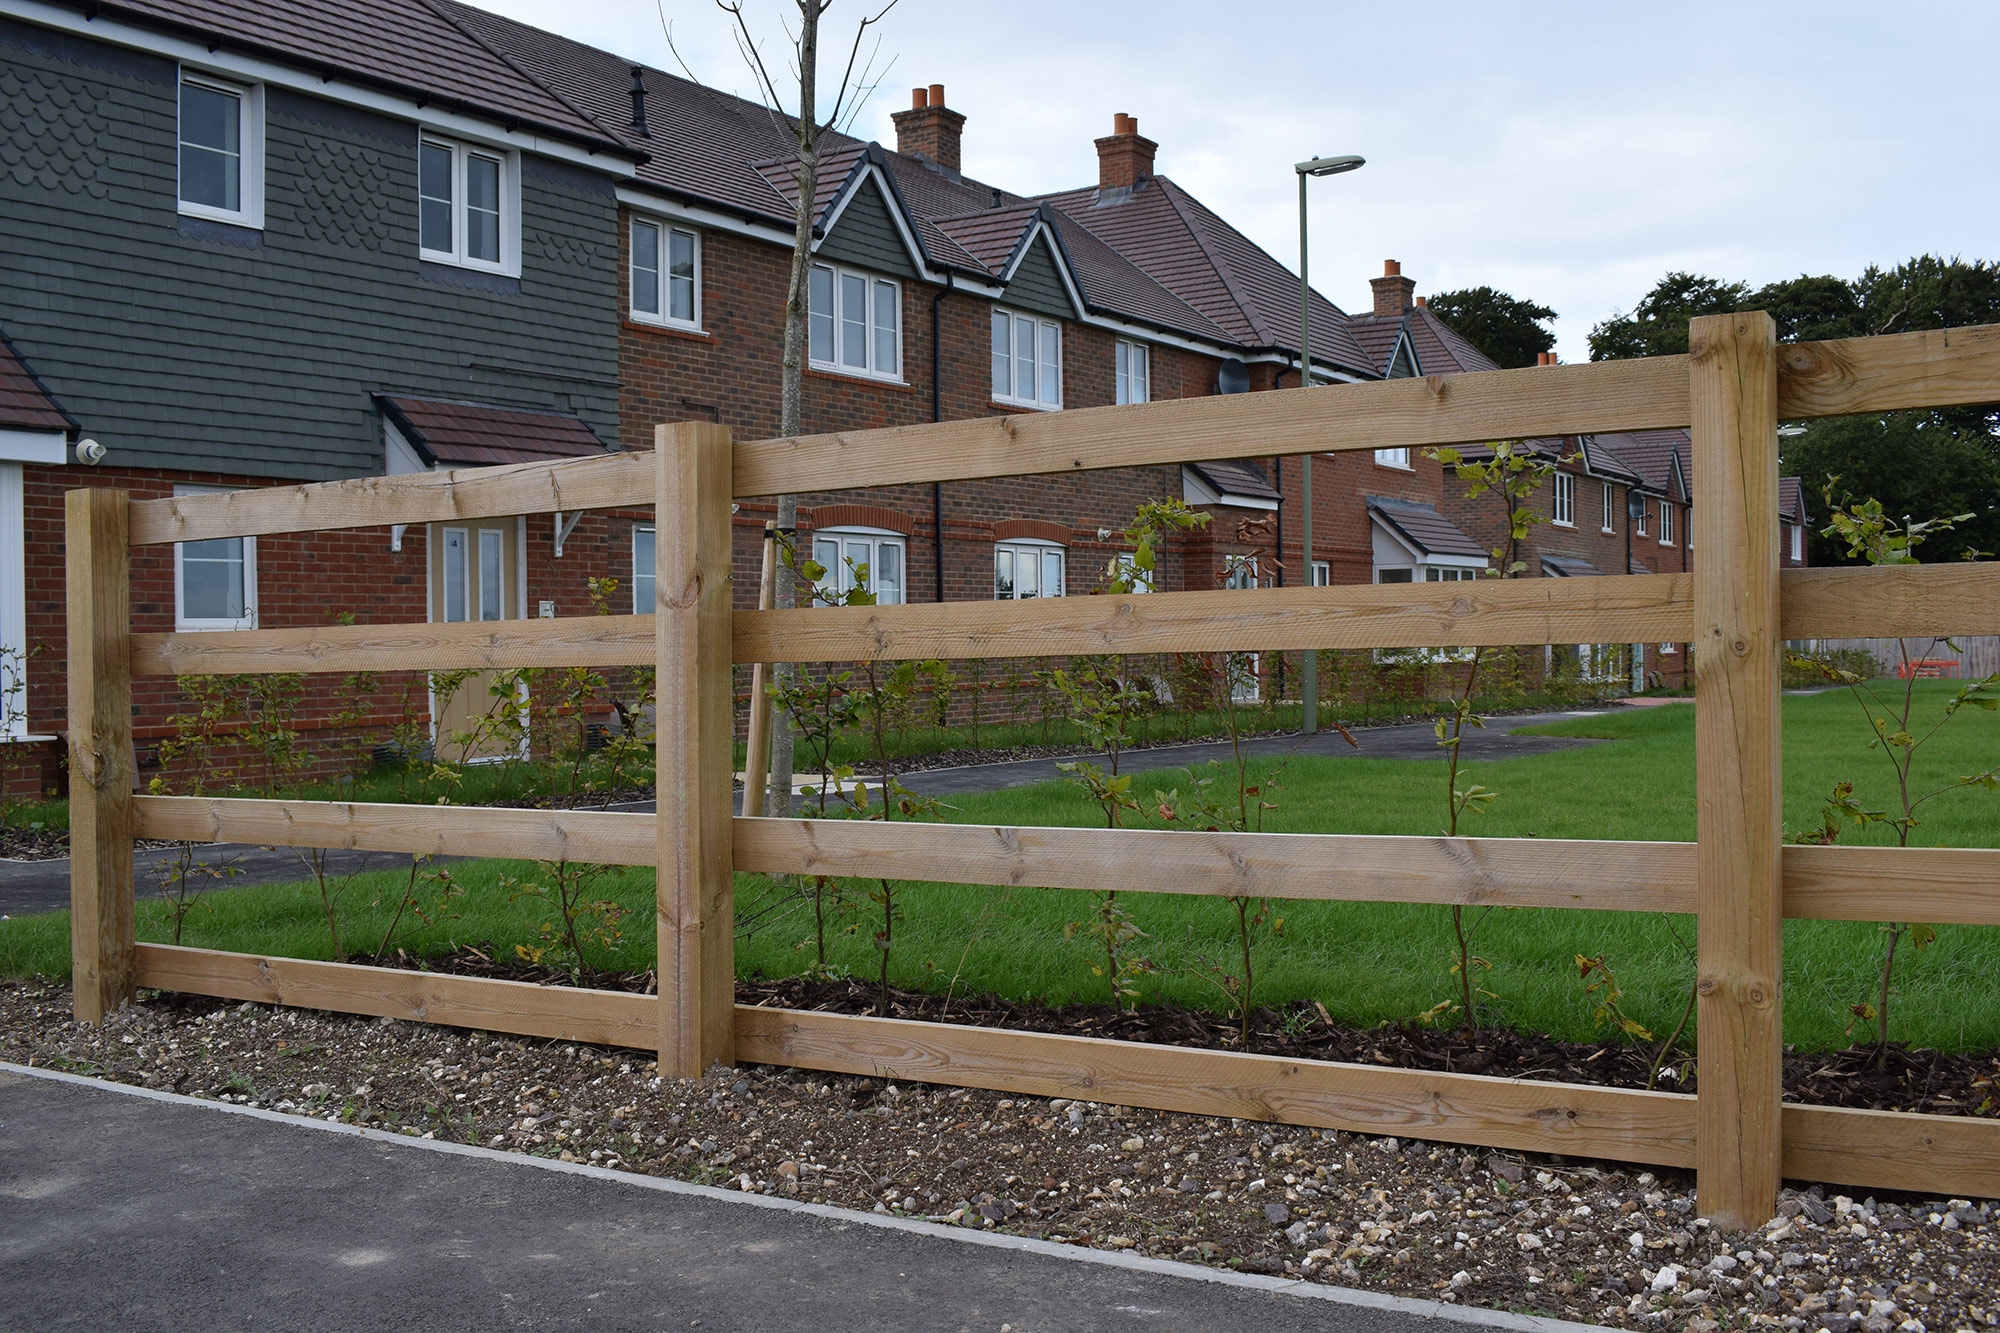 Gramm Barriers Timber Post and Rail Fencing